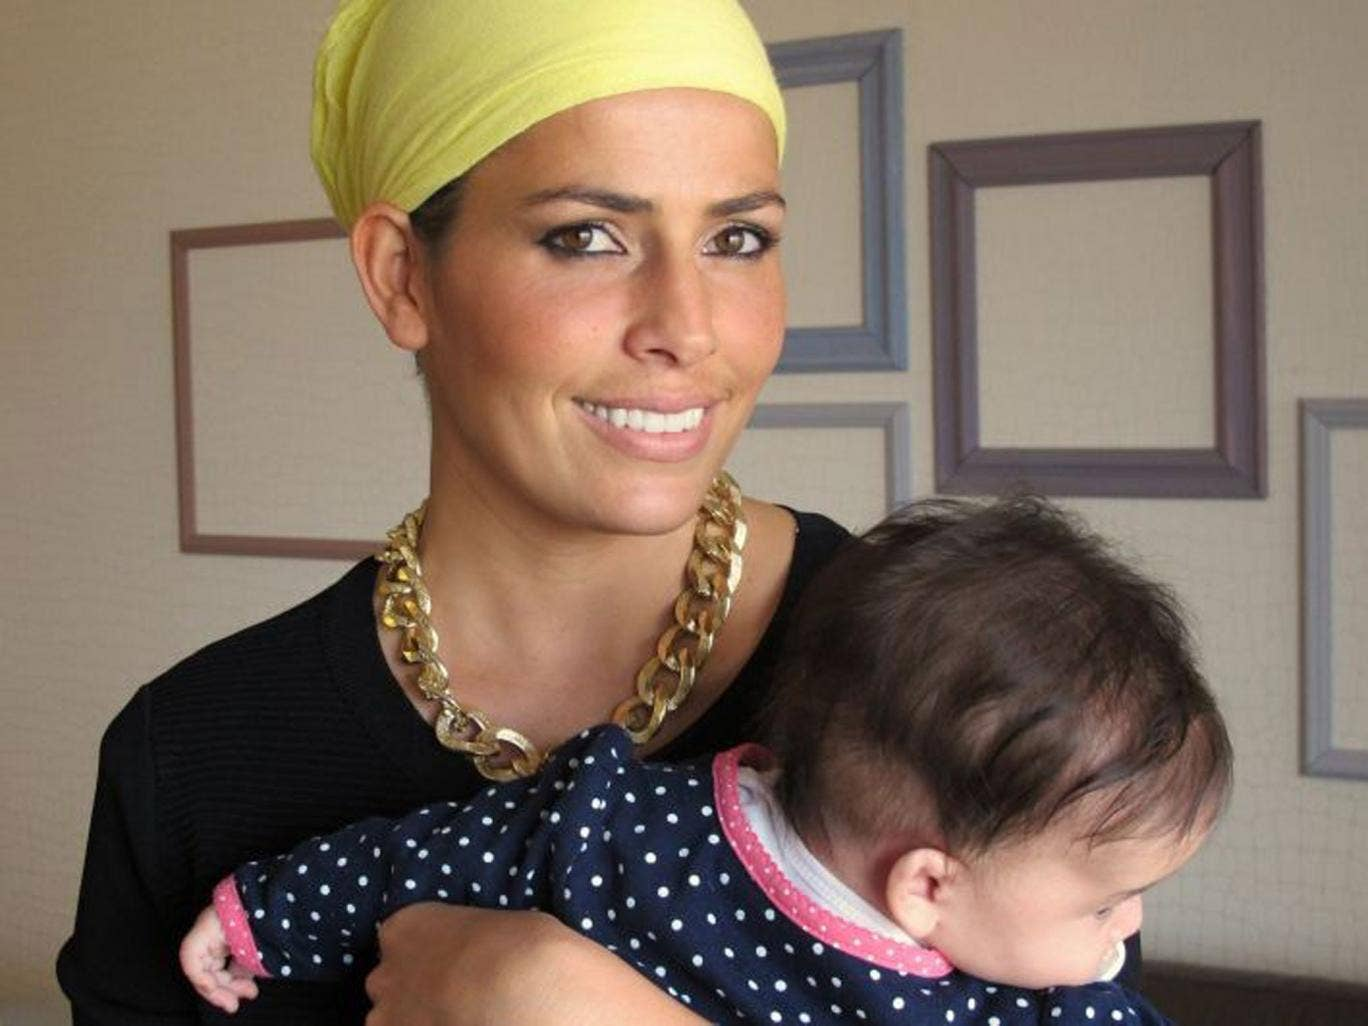 Ms Abargil with her four-month-old daughter at her home in Netanya, Israel